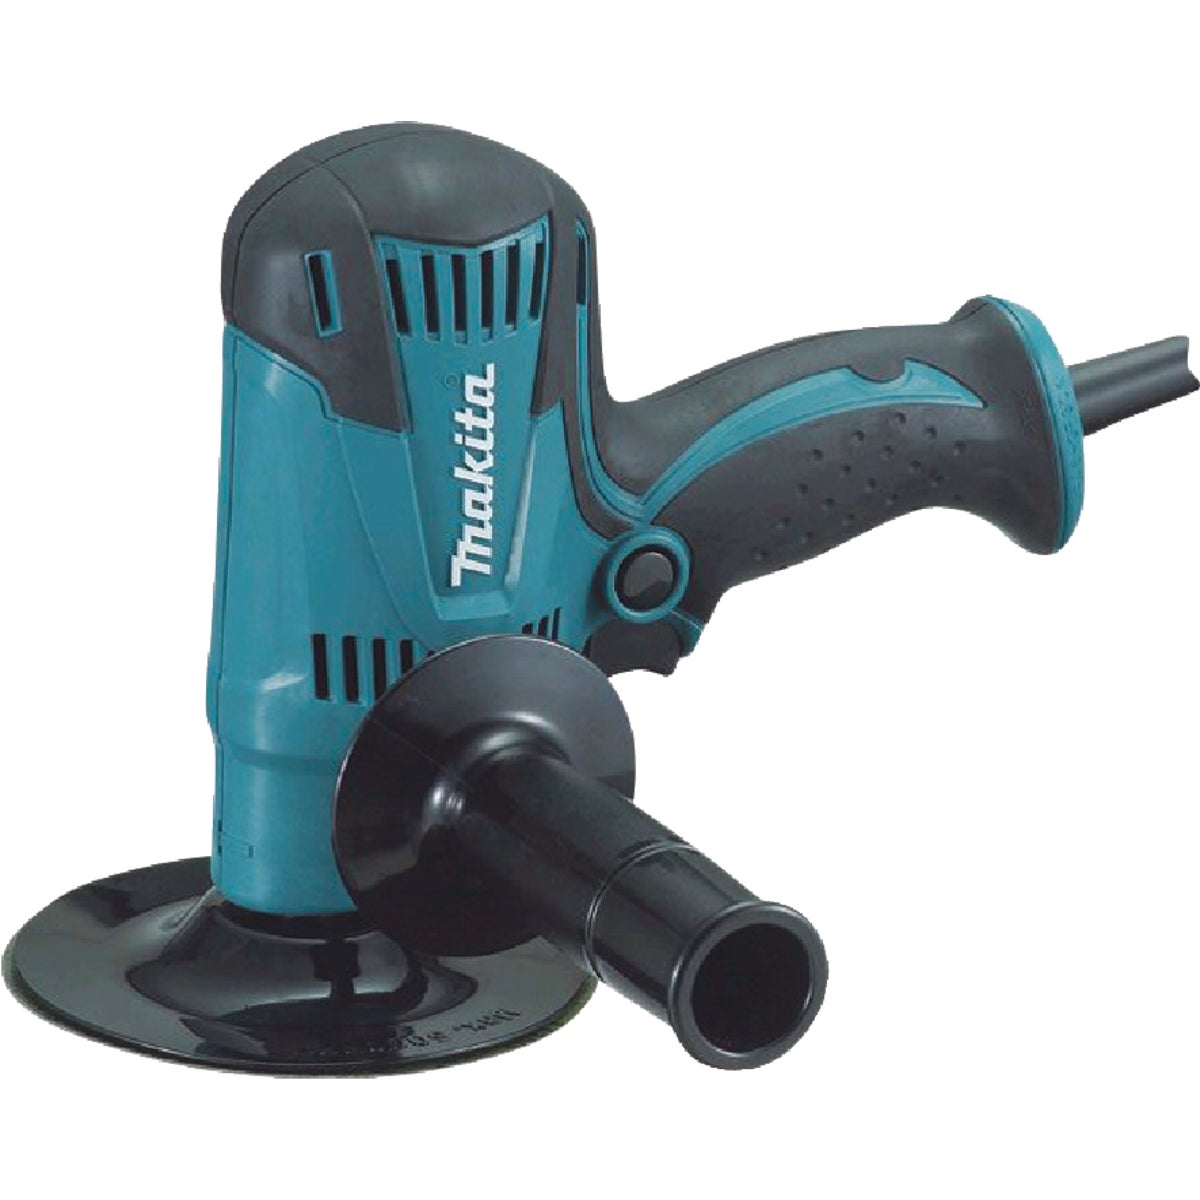 "5"" DISC SANDER - GV5010 by Makita Usa Inc"